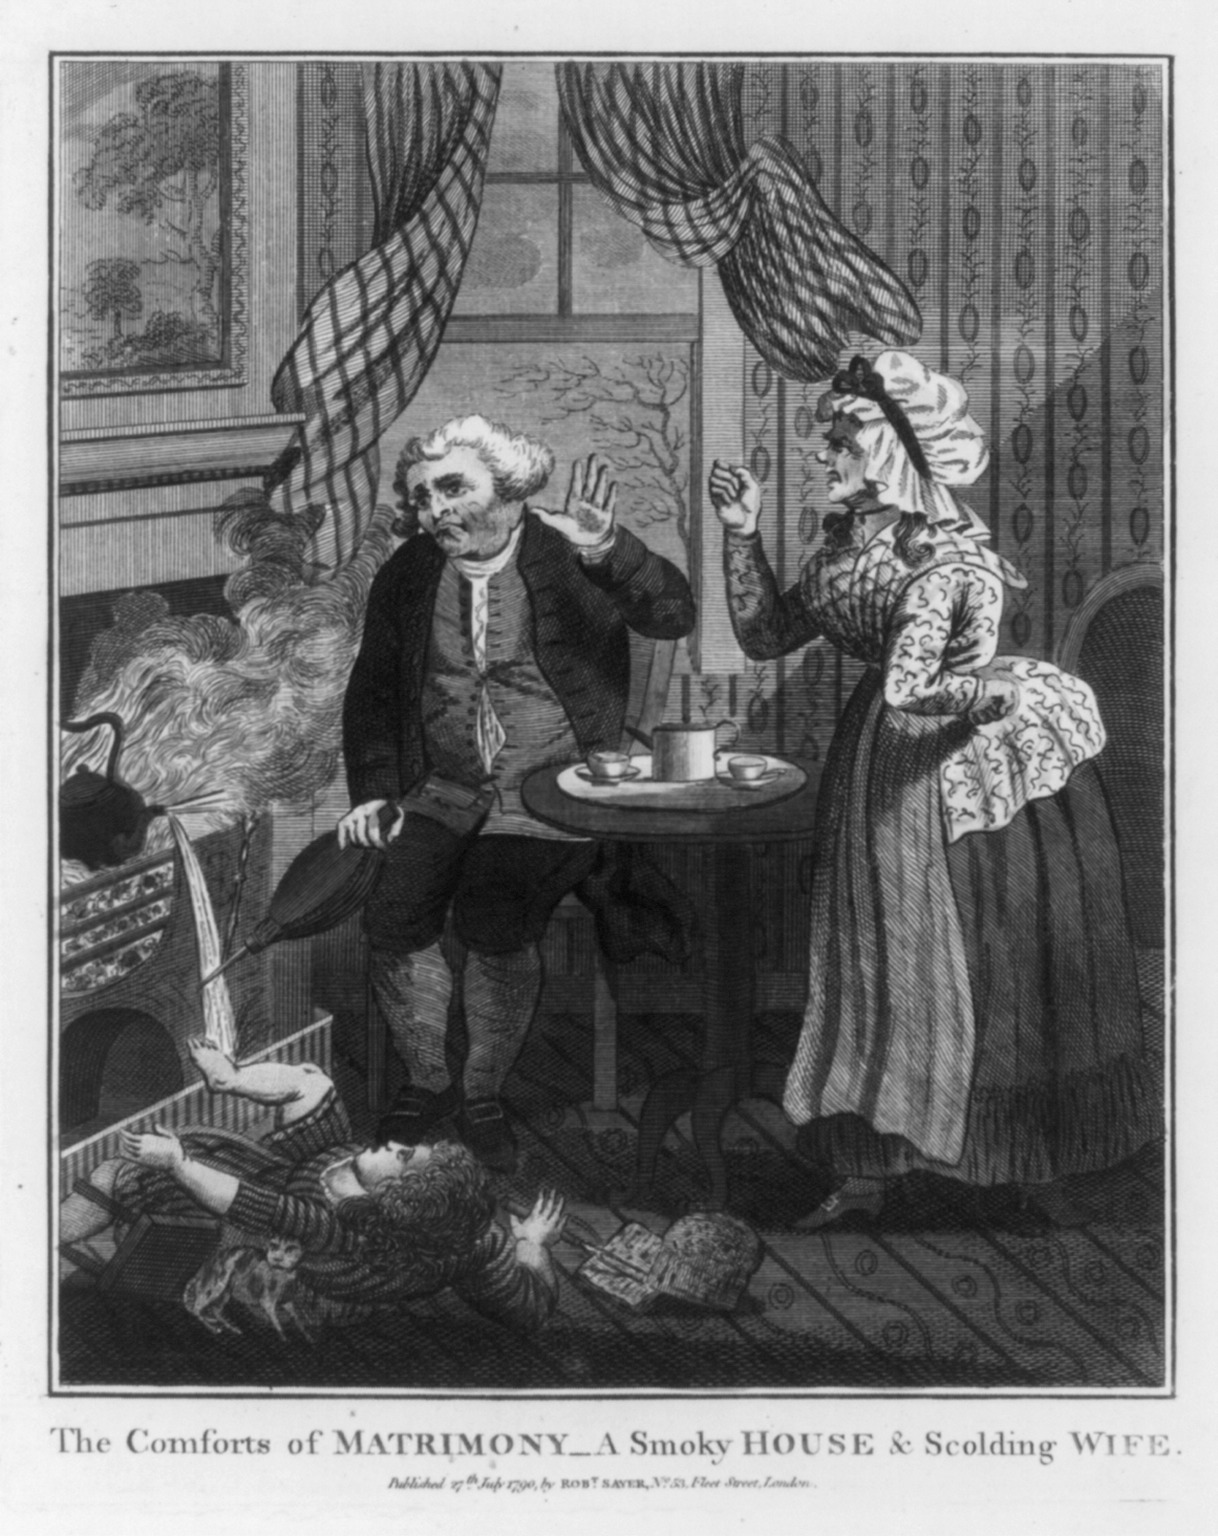 Man seated by window and smoky fireplace, with woman shaking fist at him; child falling off stool, 1790